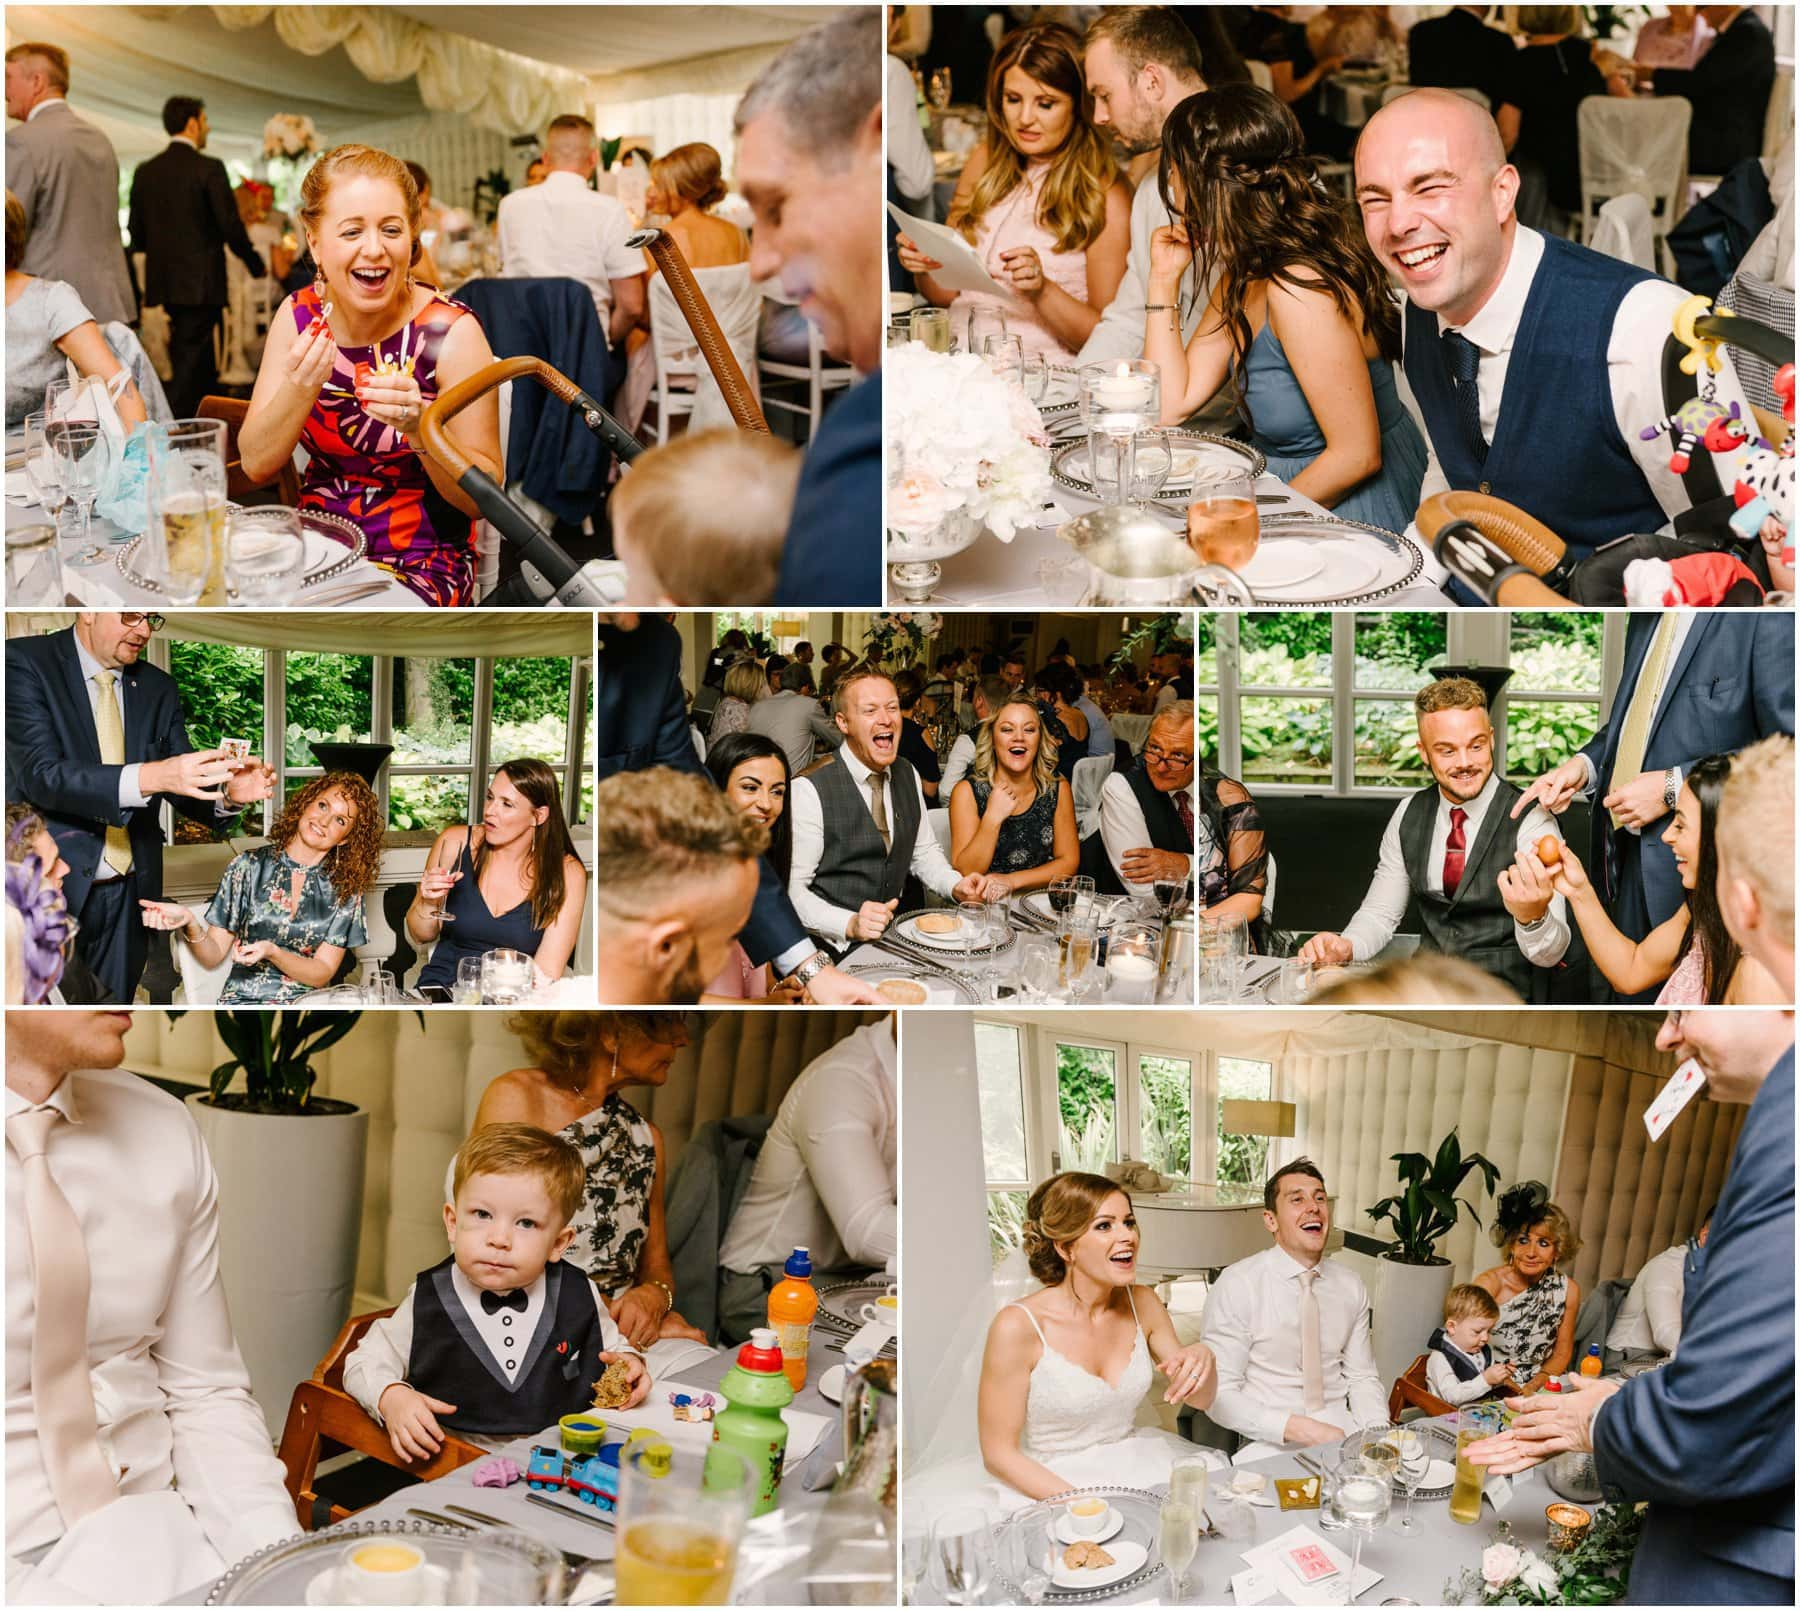 Emily and Andrew's Moxhull Hall Wedding in Sutton Coldfield